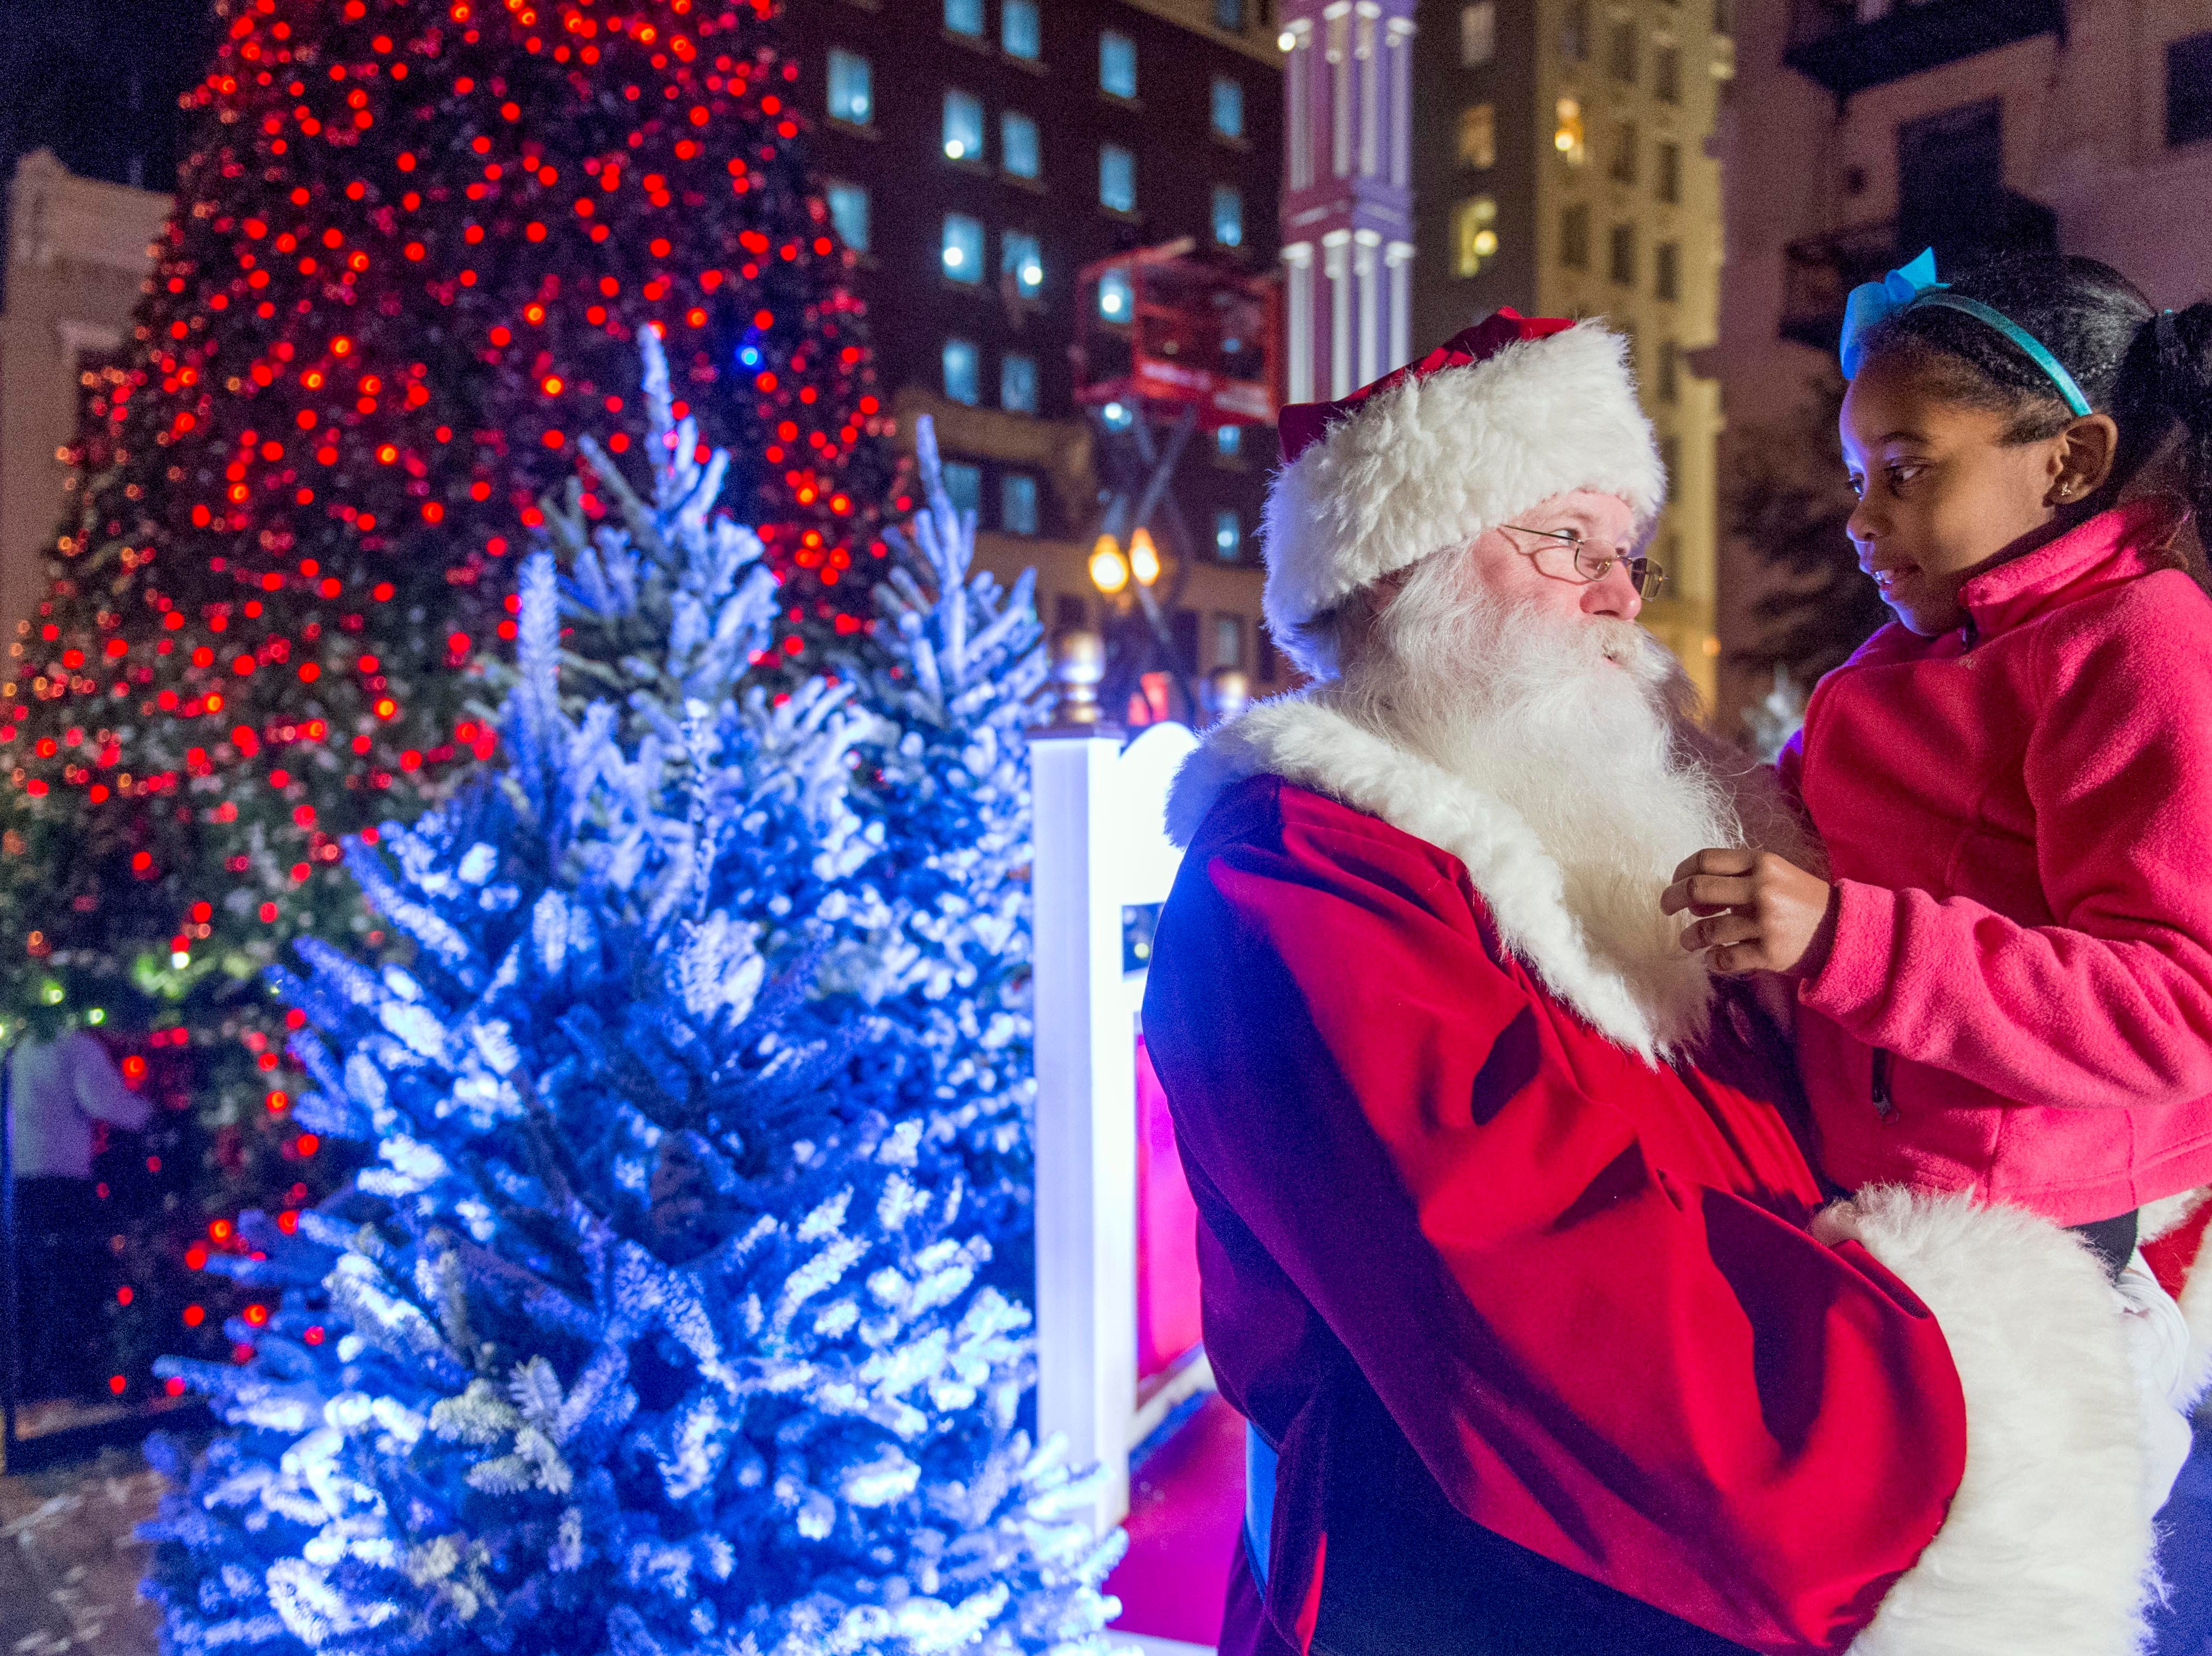 Santa is greeted by Kheri Bonds on Friday, November 25, 2016 during the Christmas in the City celebration in Downtown Knoxville. The City kicked off the holiday season with the lighting of the Downtown Christmas Tree on Friday, November 25, 2016 and the Regal Celebration of Lights.